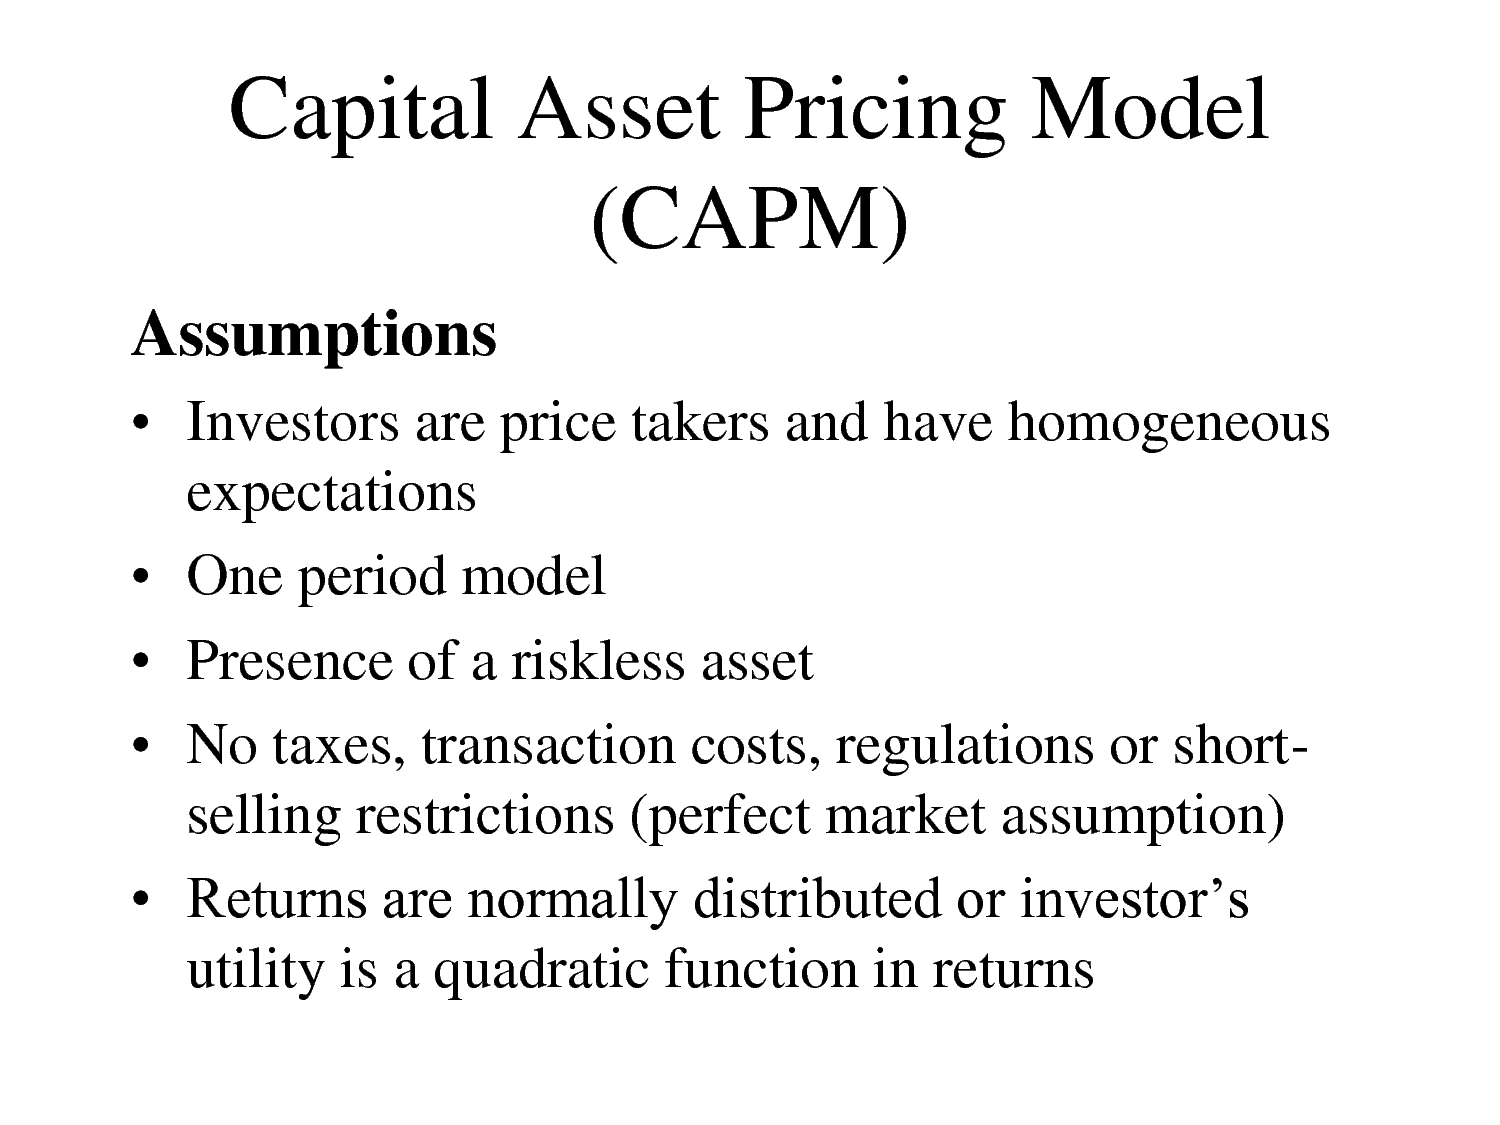 capital asset pricing model capm vs arbitrage pricing With increasing doubt about the validity of the one-factor capital asset pricing  model in pricing financial assets, development of newer models.